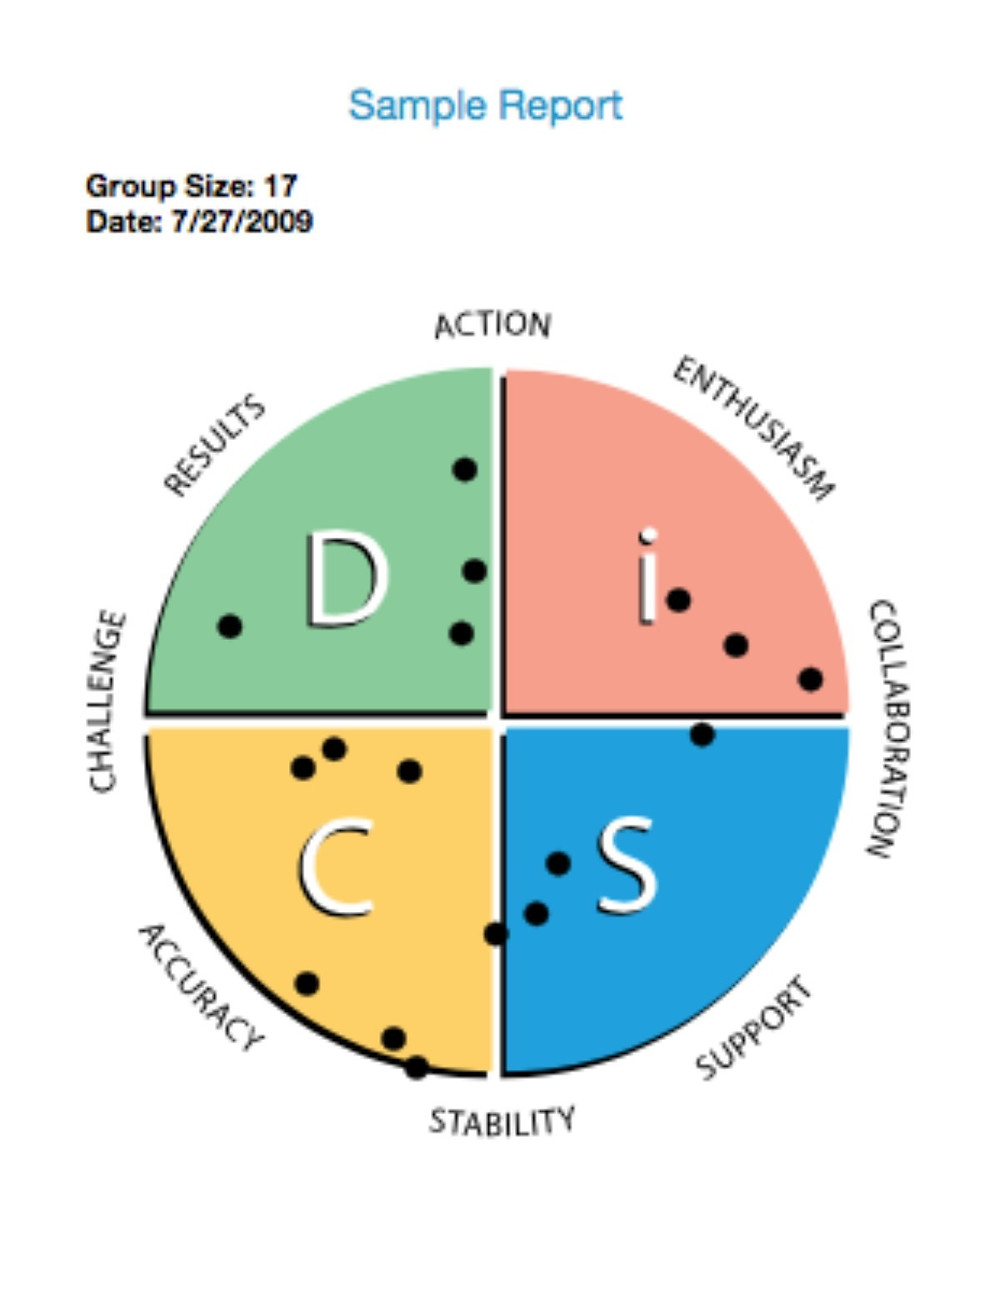 Image of a DiSC map for a group